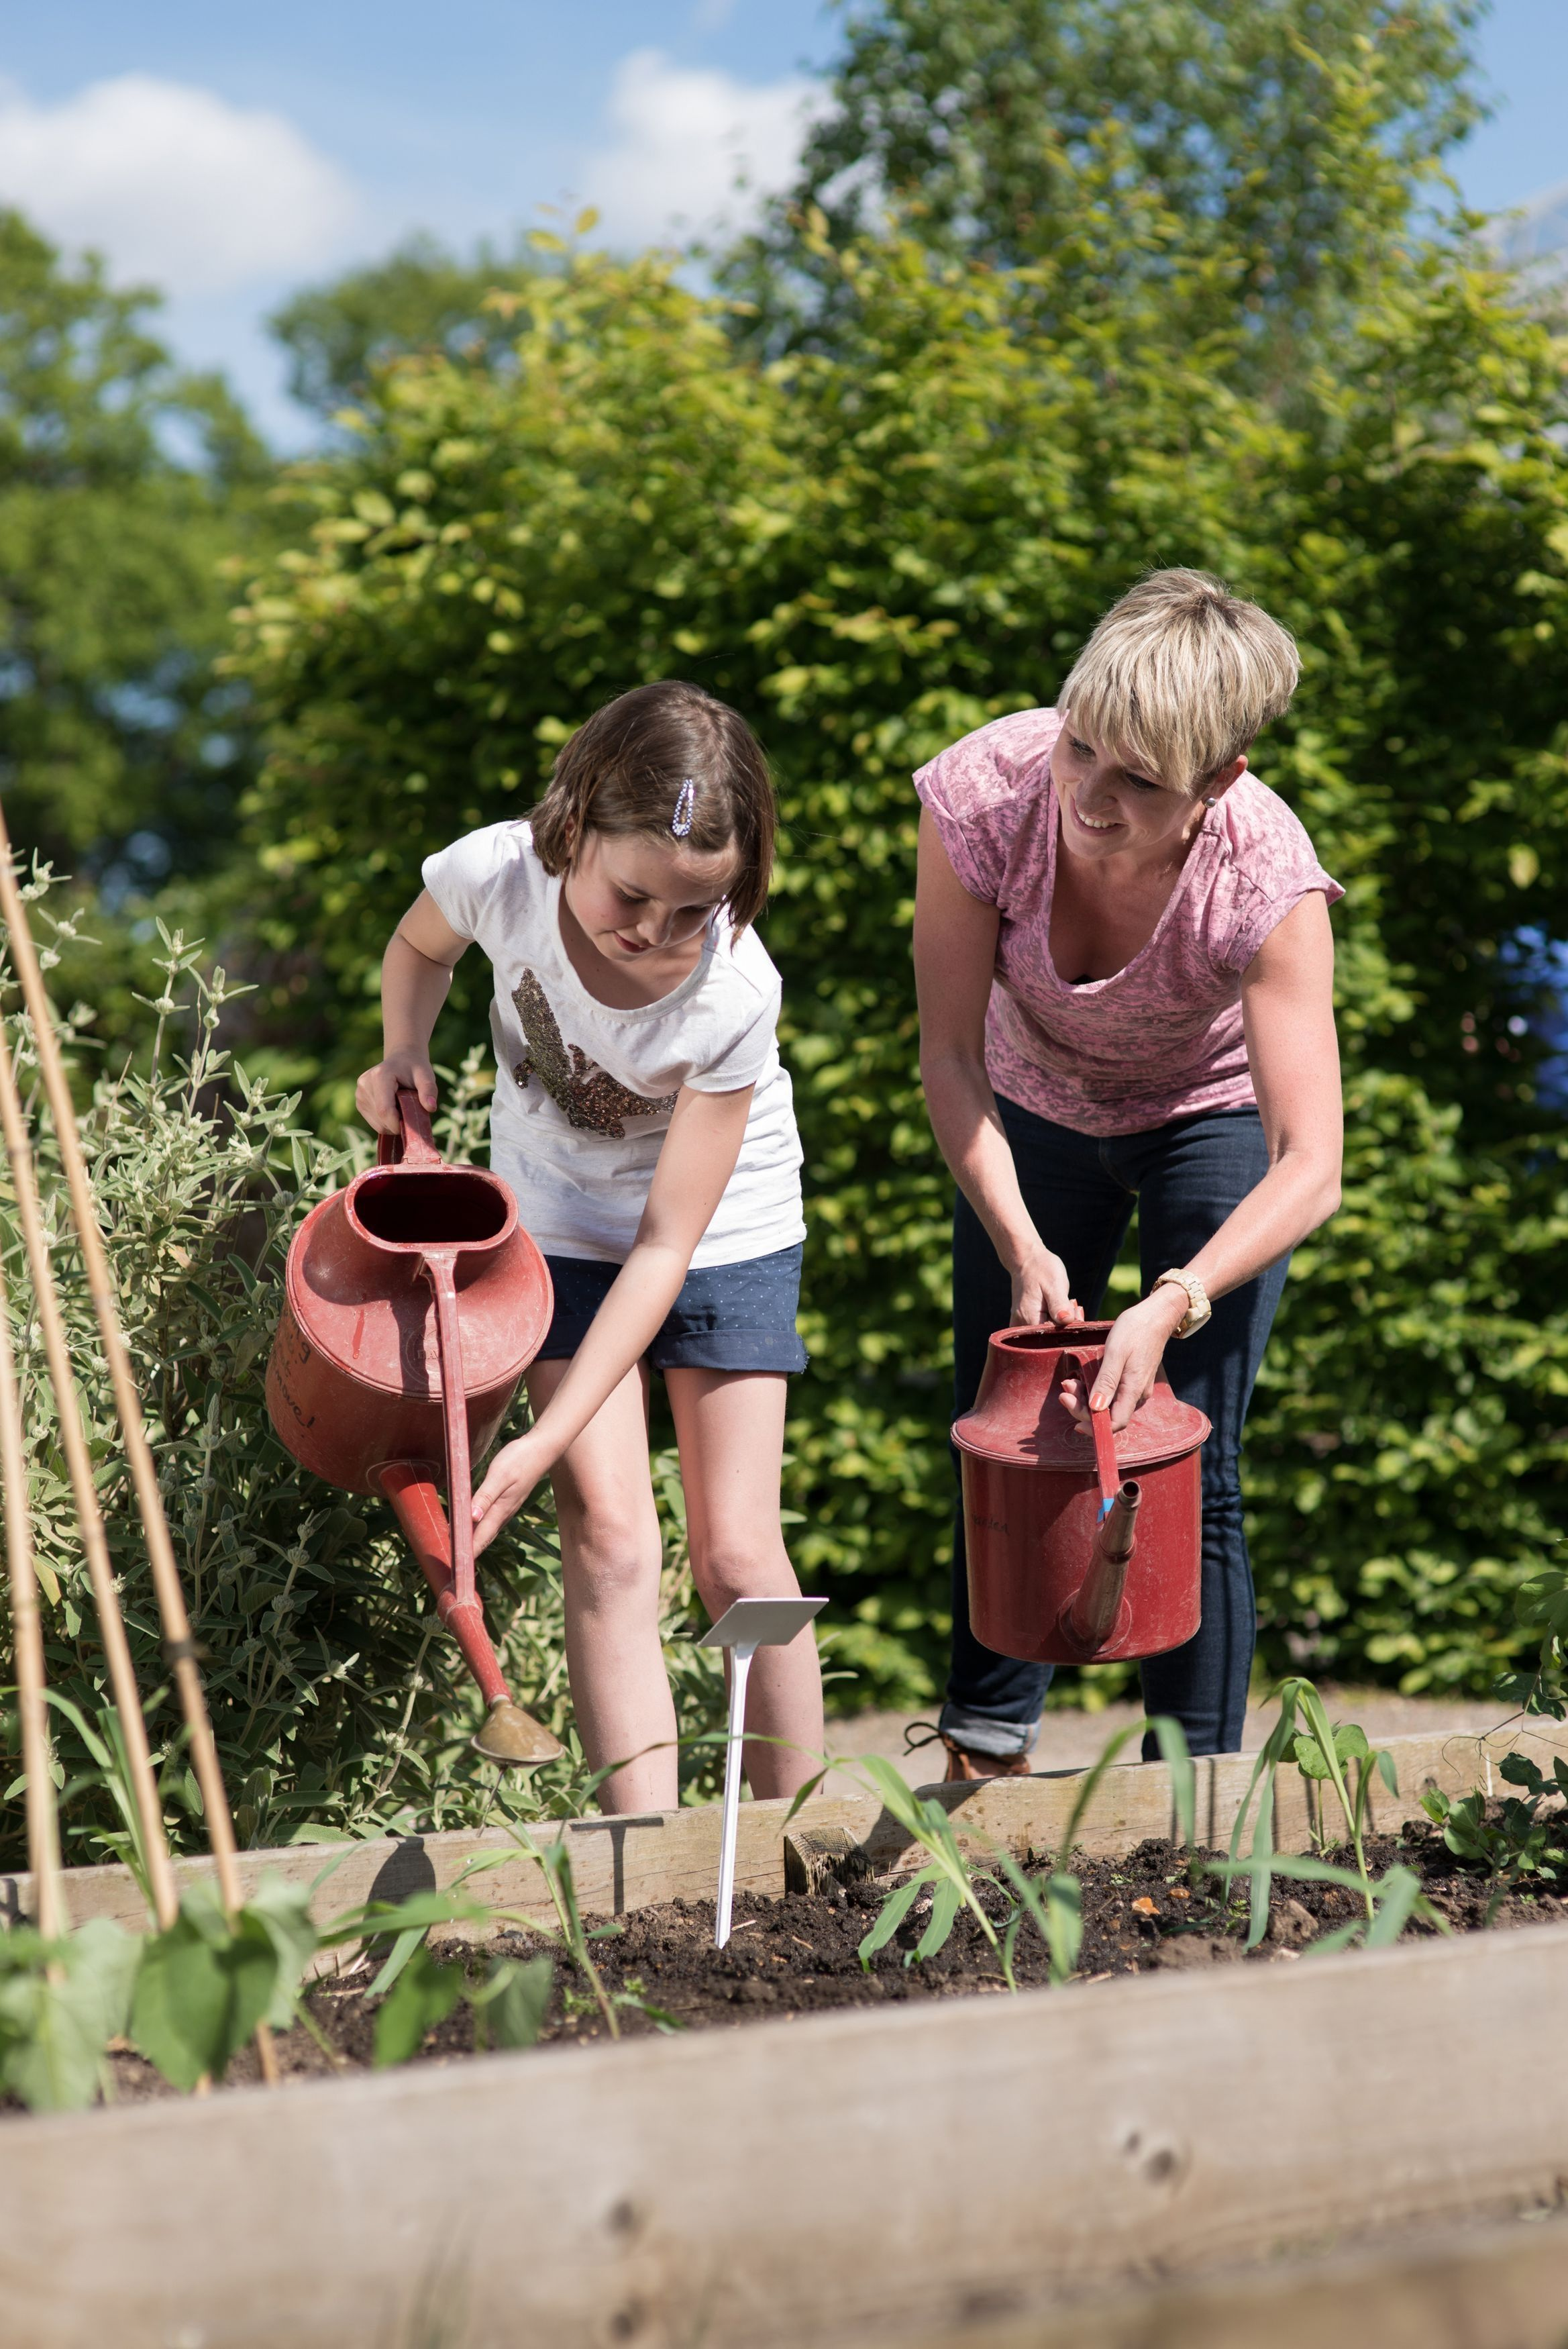 Gardening with children: how to get your little ones outdoors